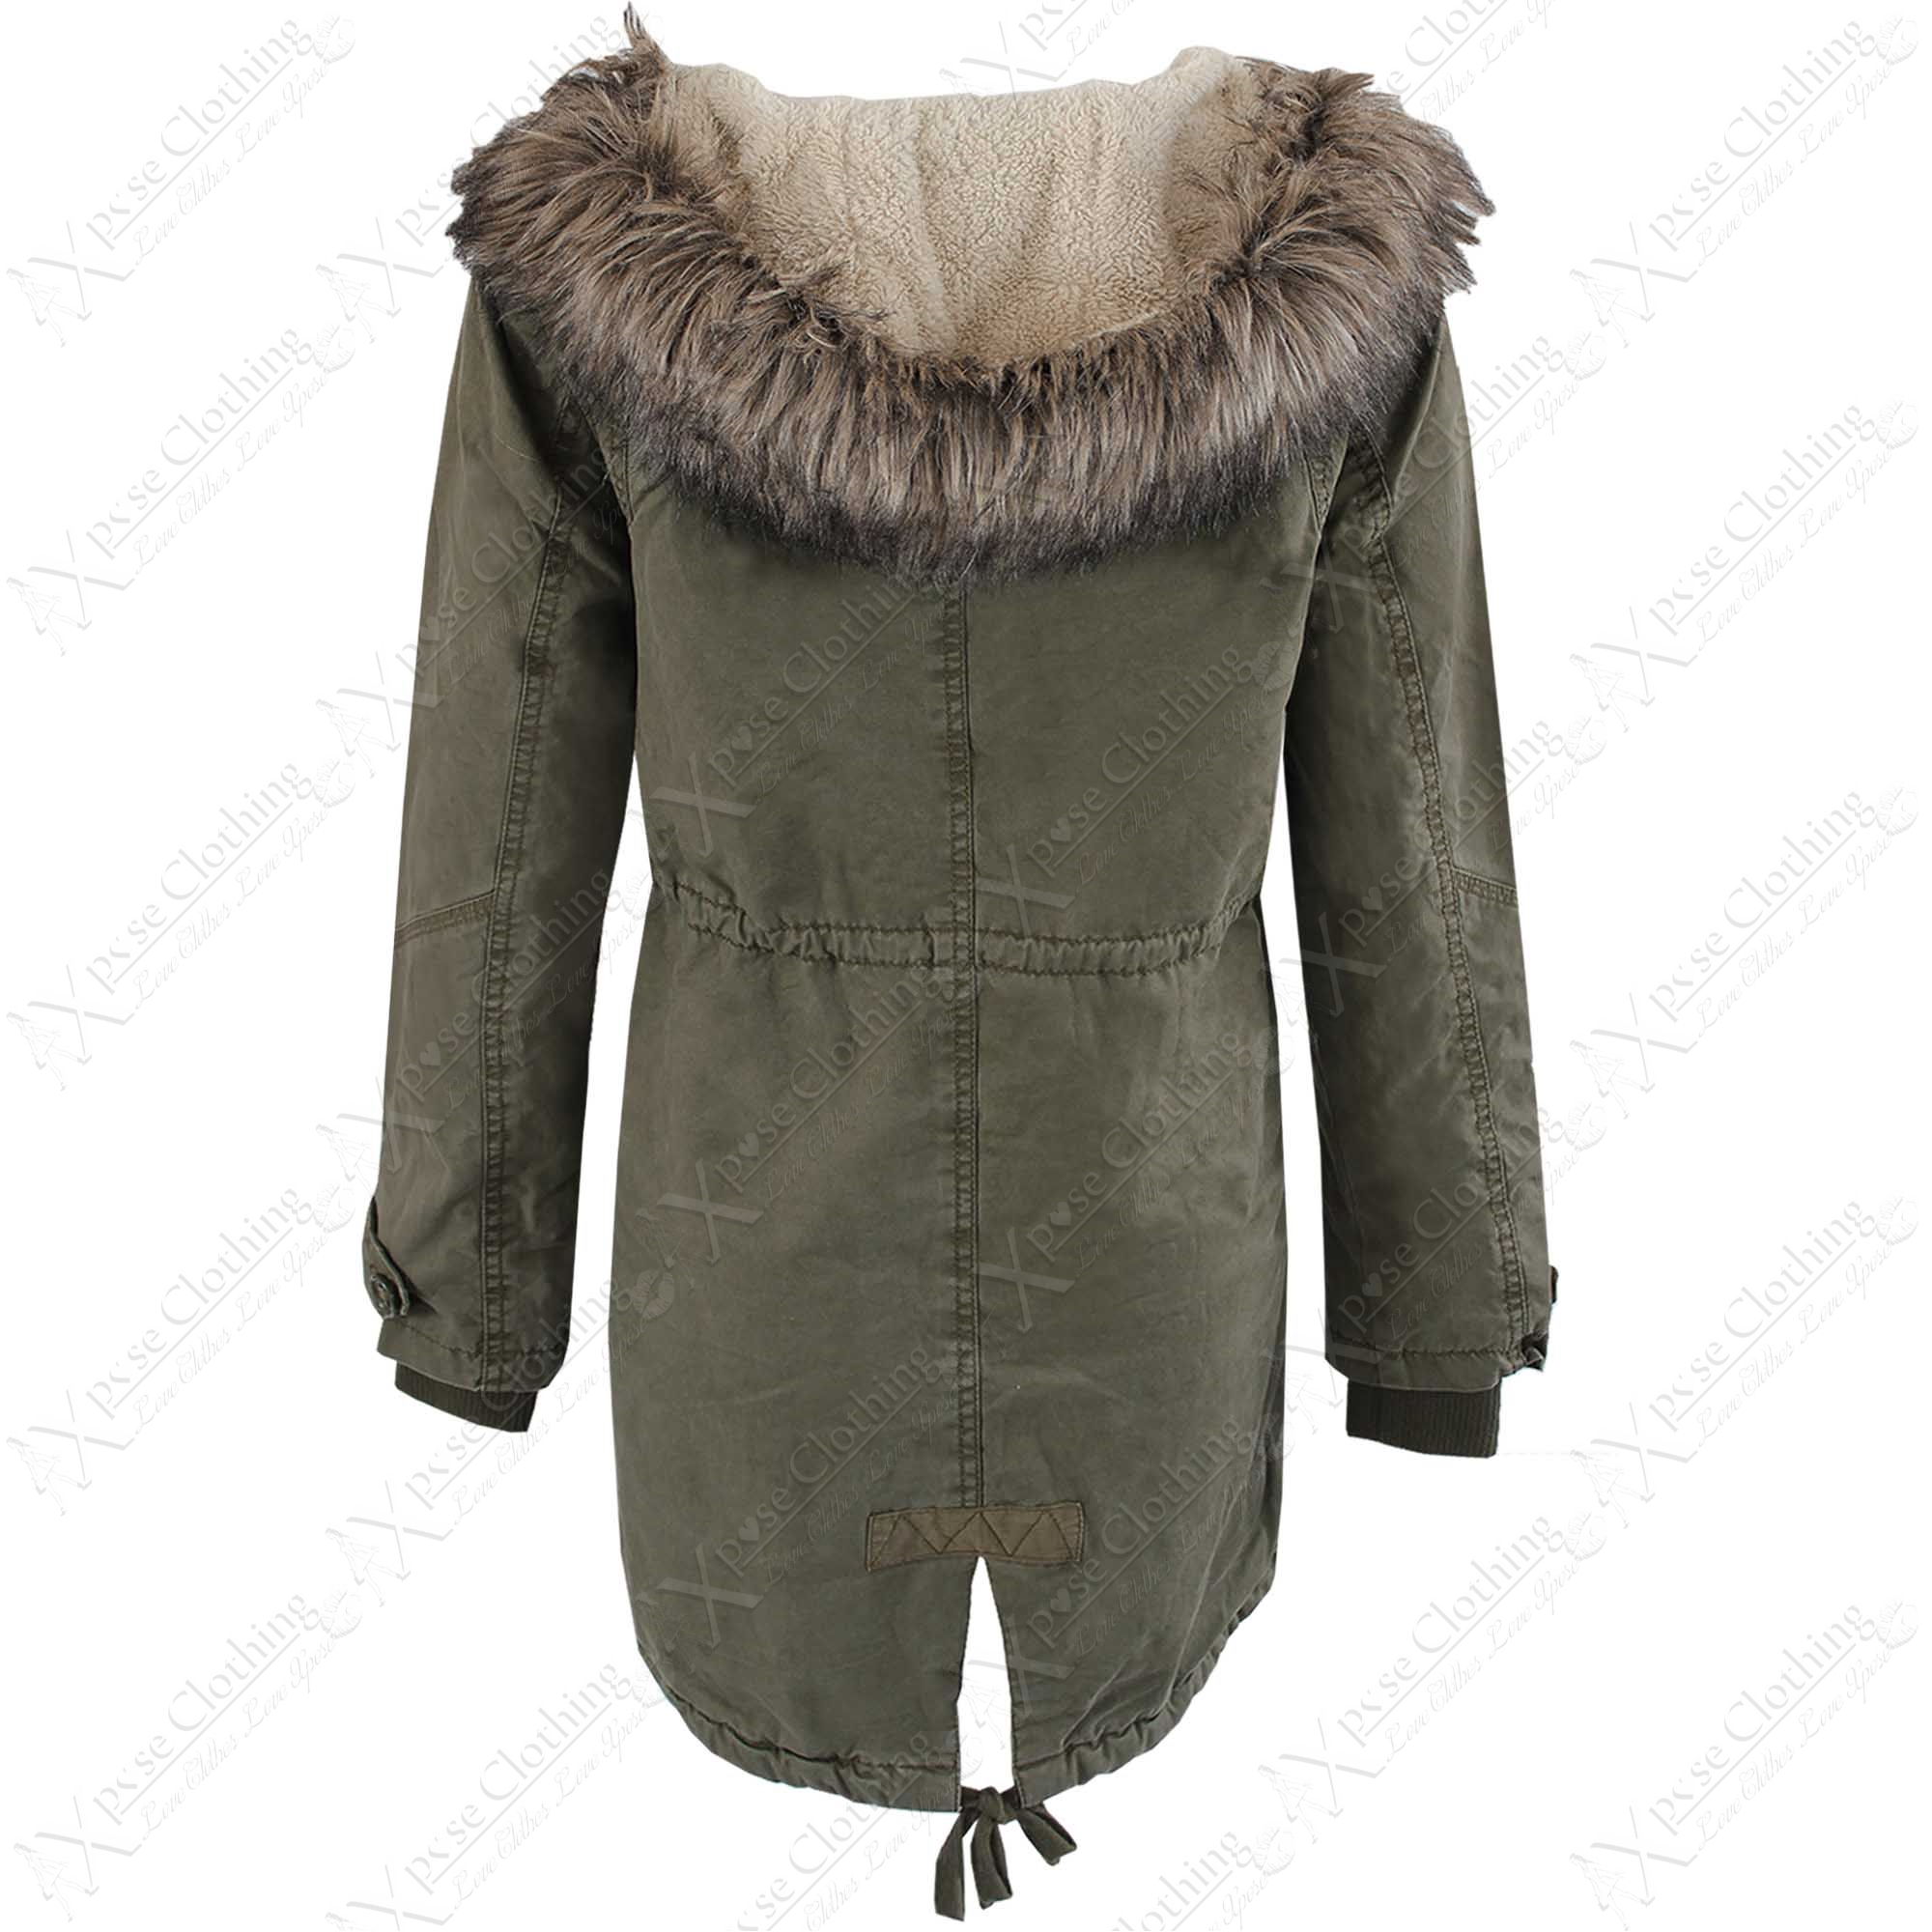 NEW WOMENS FULL BORG LINED PARKA LADIES FUR HOOD JACKET WARM COAT ...